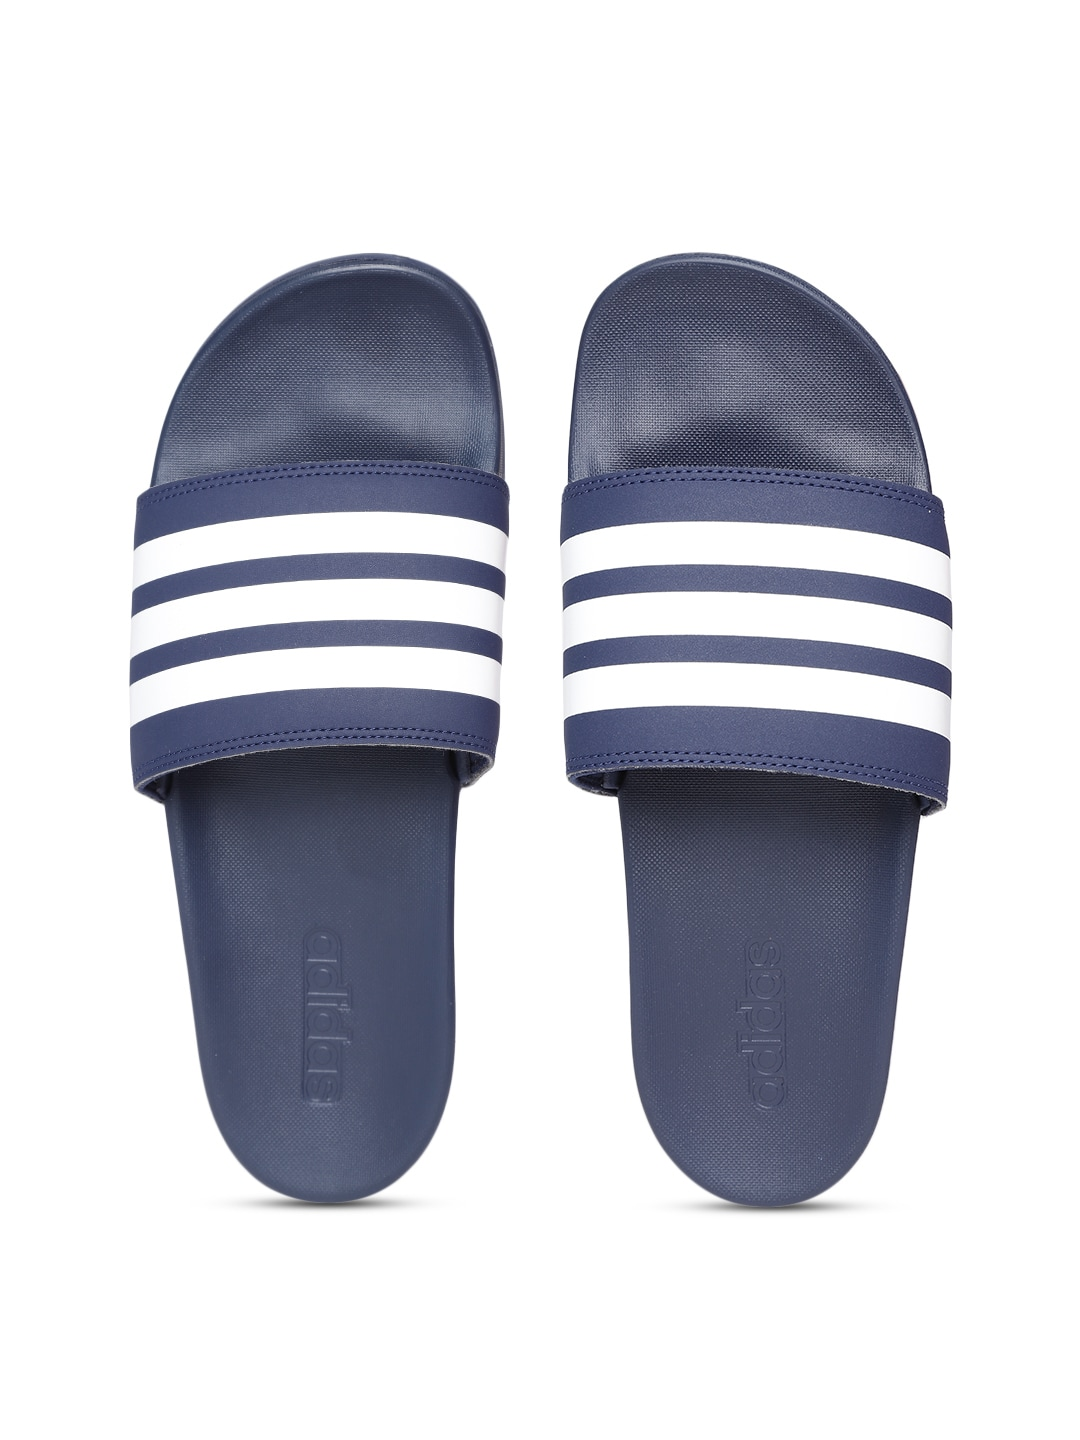 9becbca9493ca Adidas Adilette Tights Flip Flops Mascara - Buy Adidas Adilette Tights Flip  Flops Mascara online in India